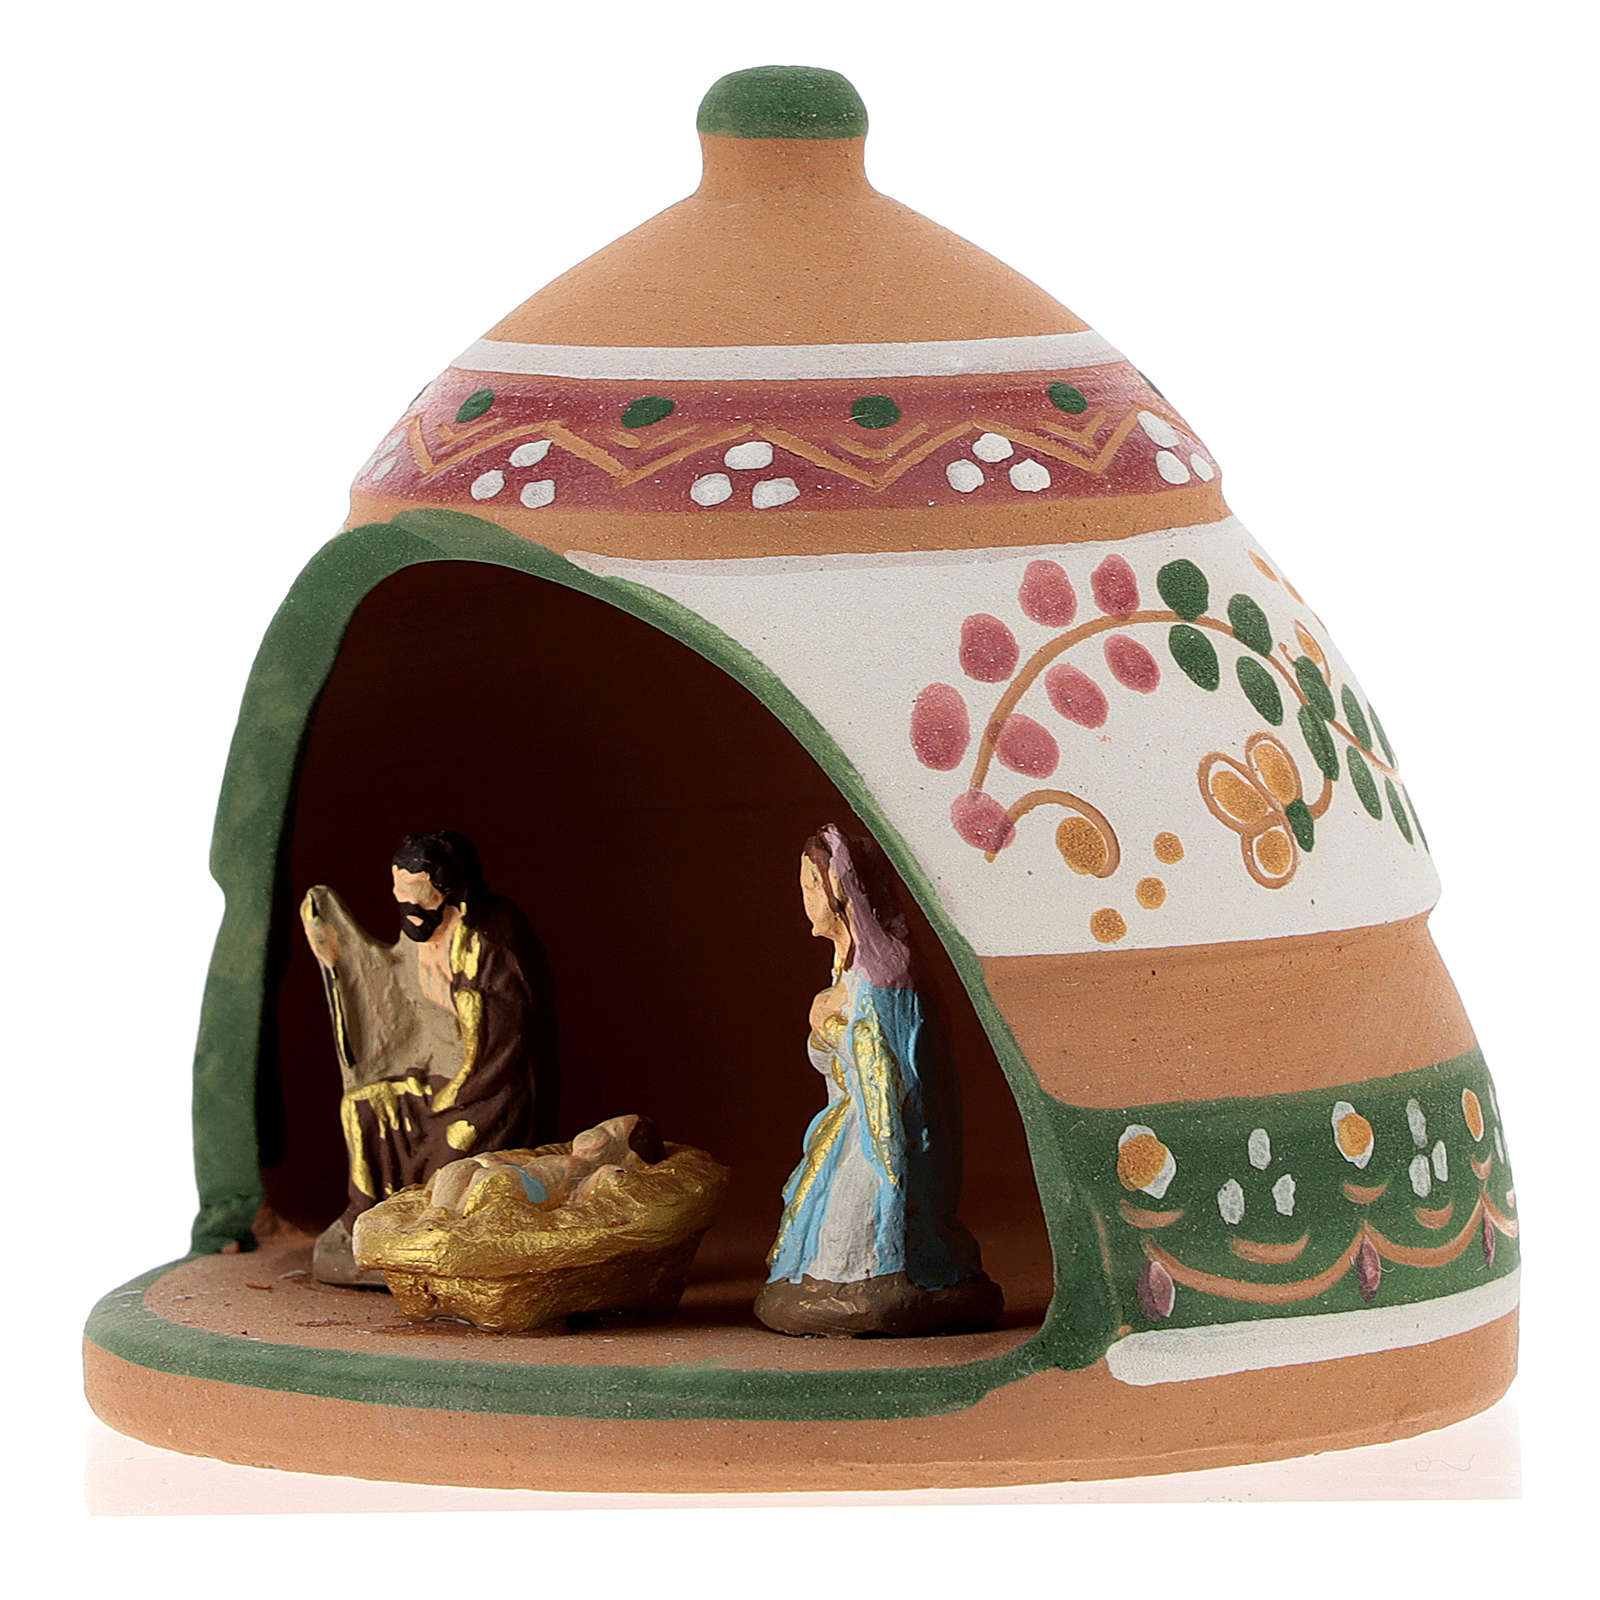 Nativity with shack in Deruta terracotta with pink and green decoration 10x10x10 cm 4